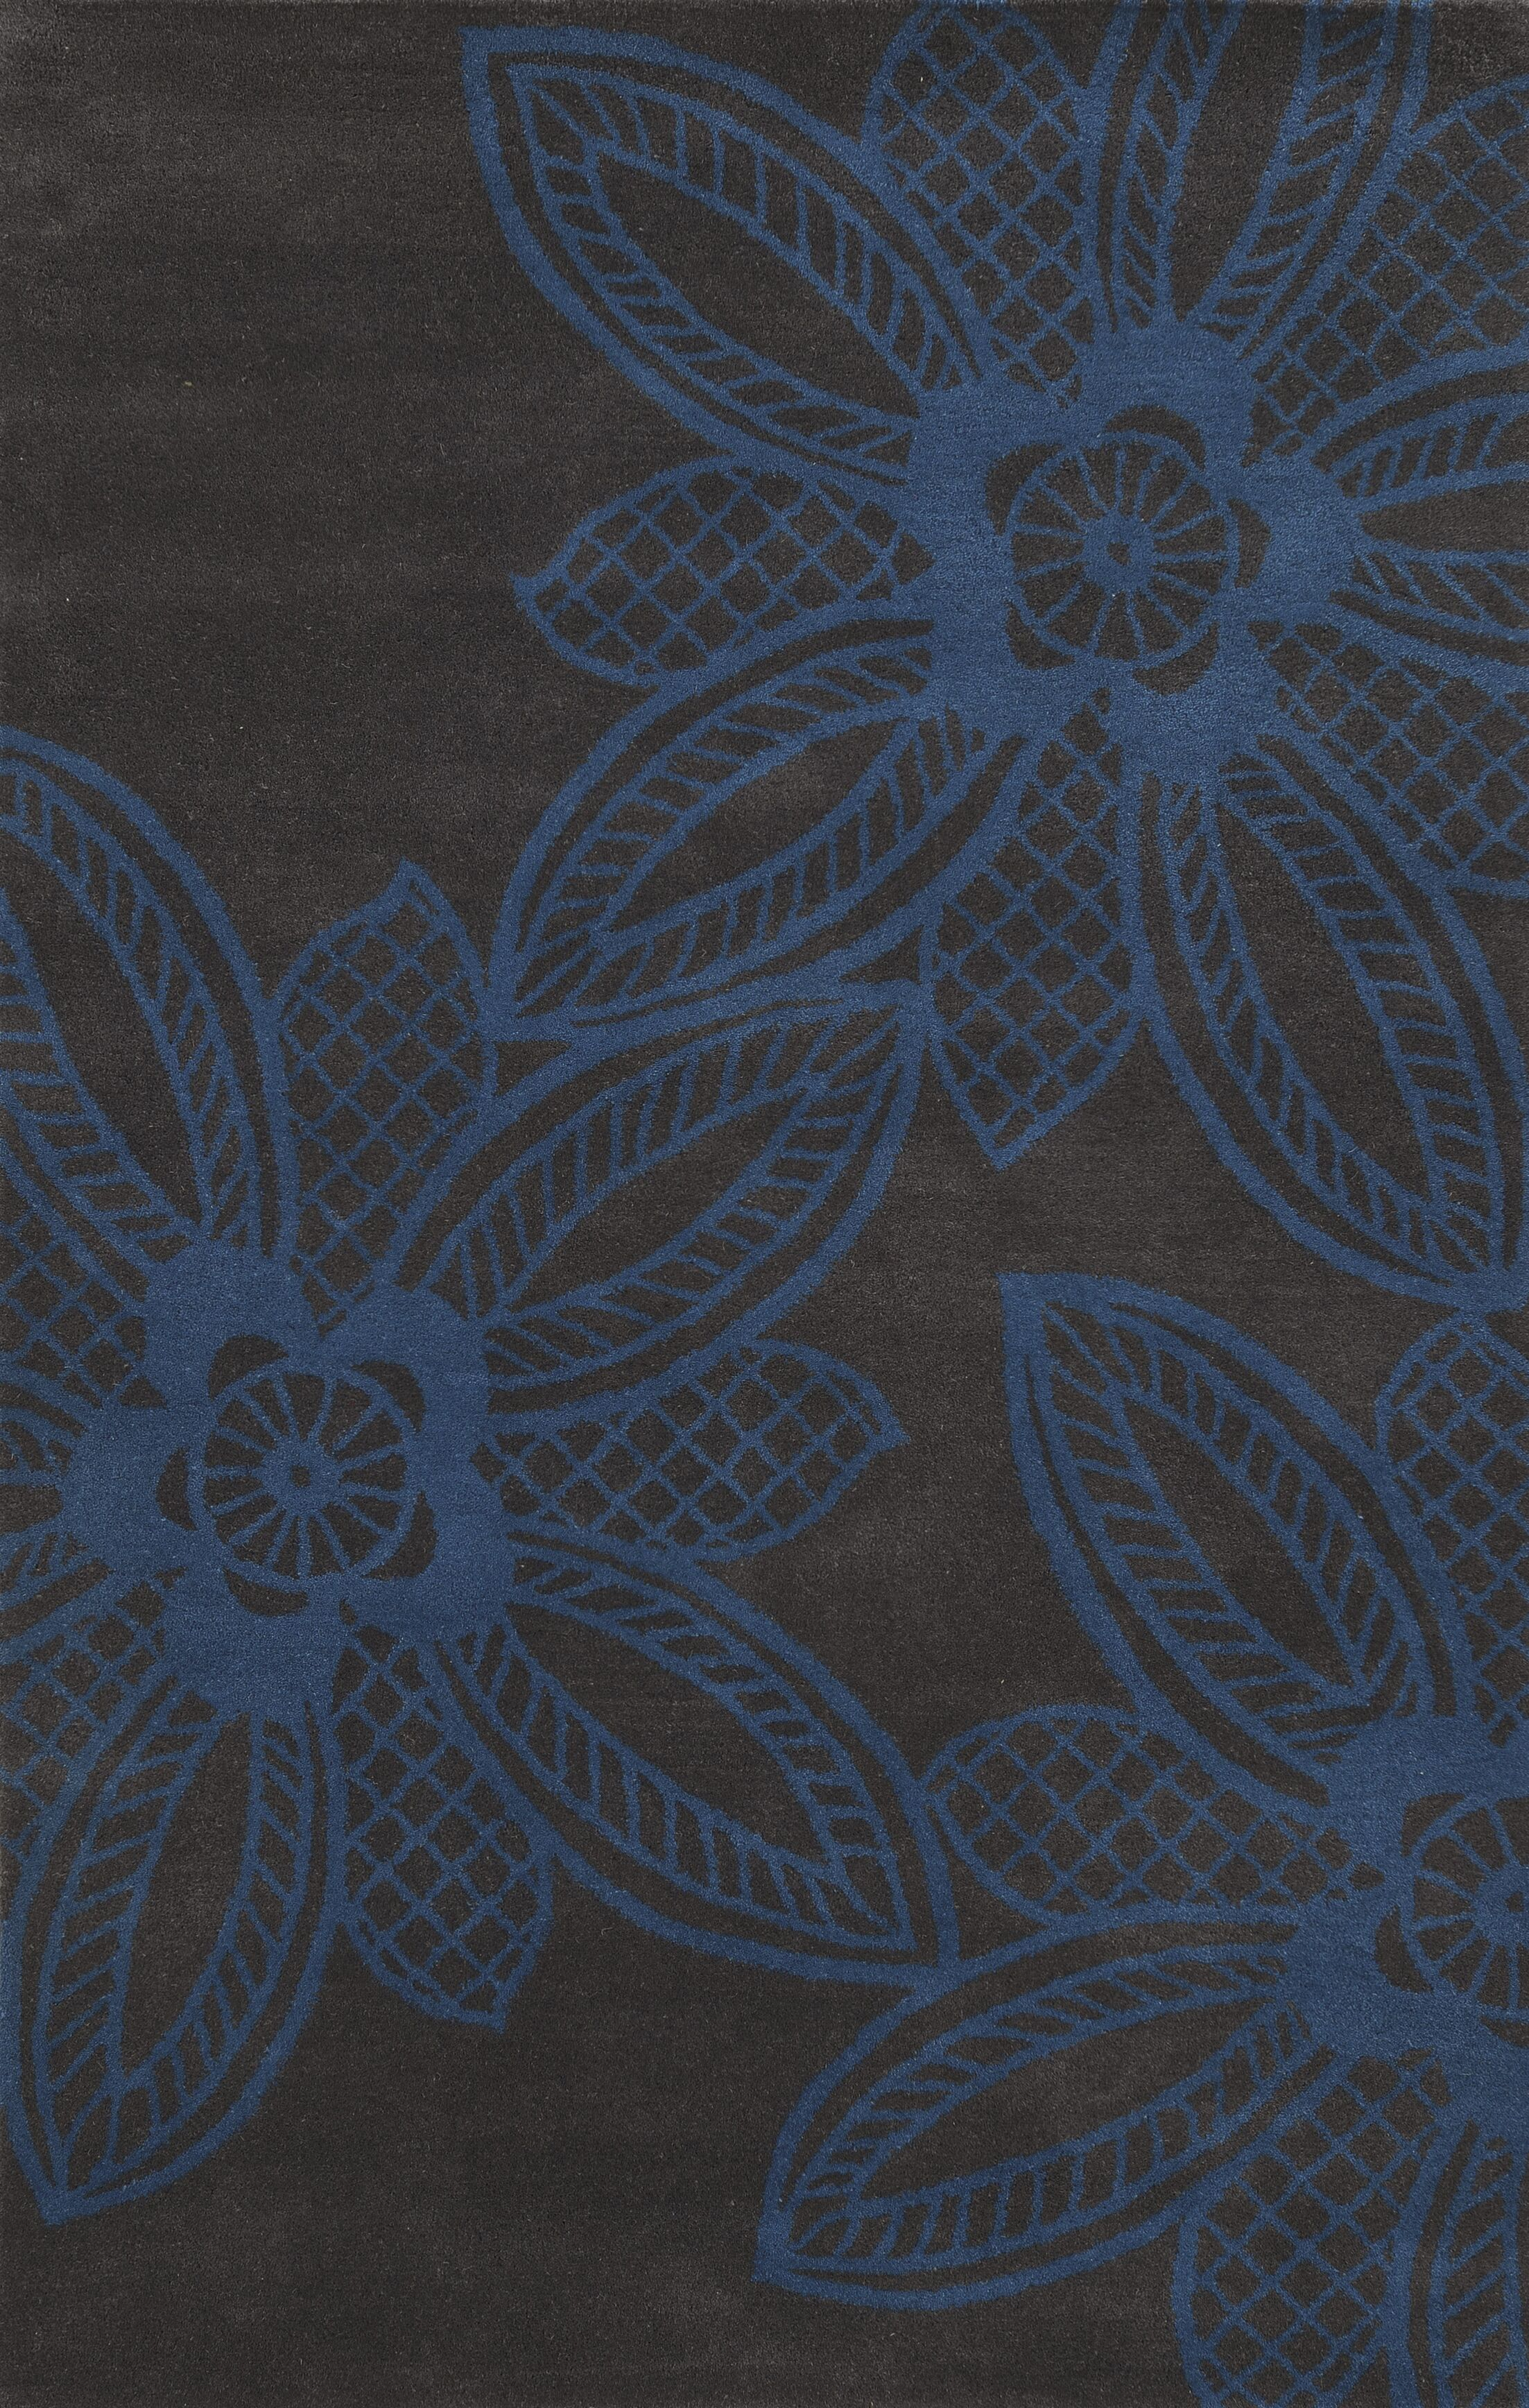 Sukhumi Hand-Tufted Blue/Grey Area Rug Rug Size: Round 8'